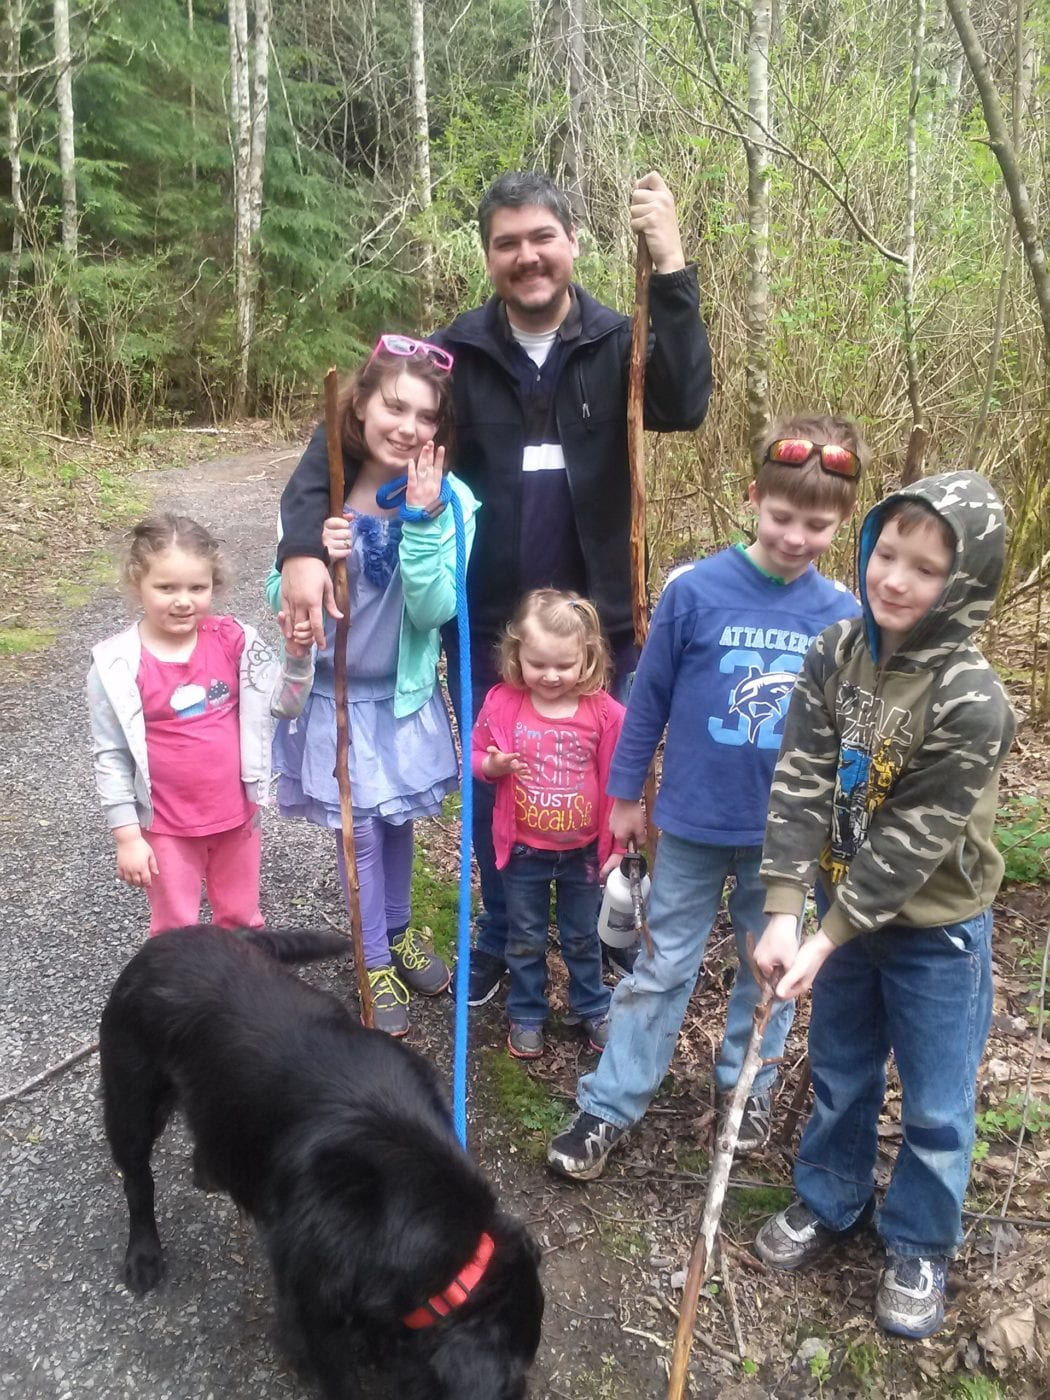 Family hiking at Lookout Mountain Preserve